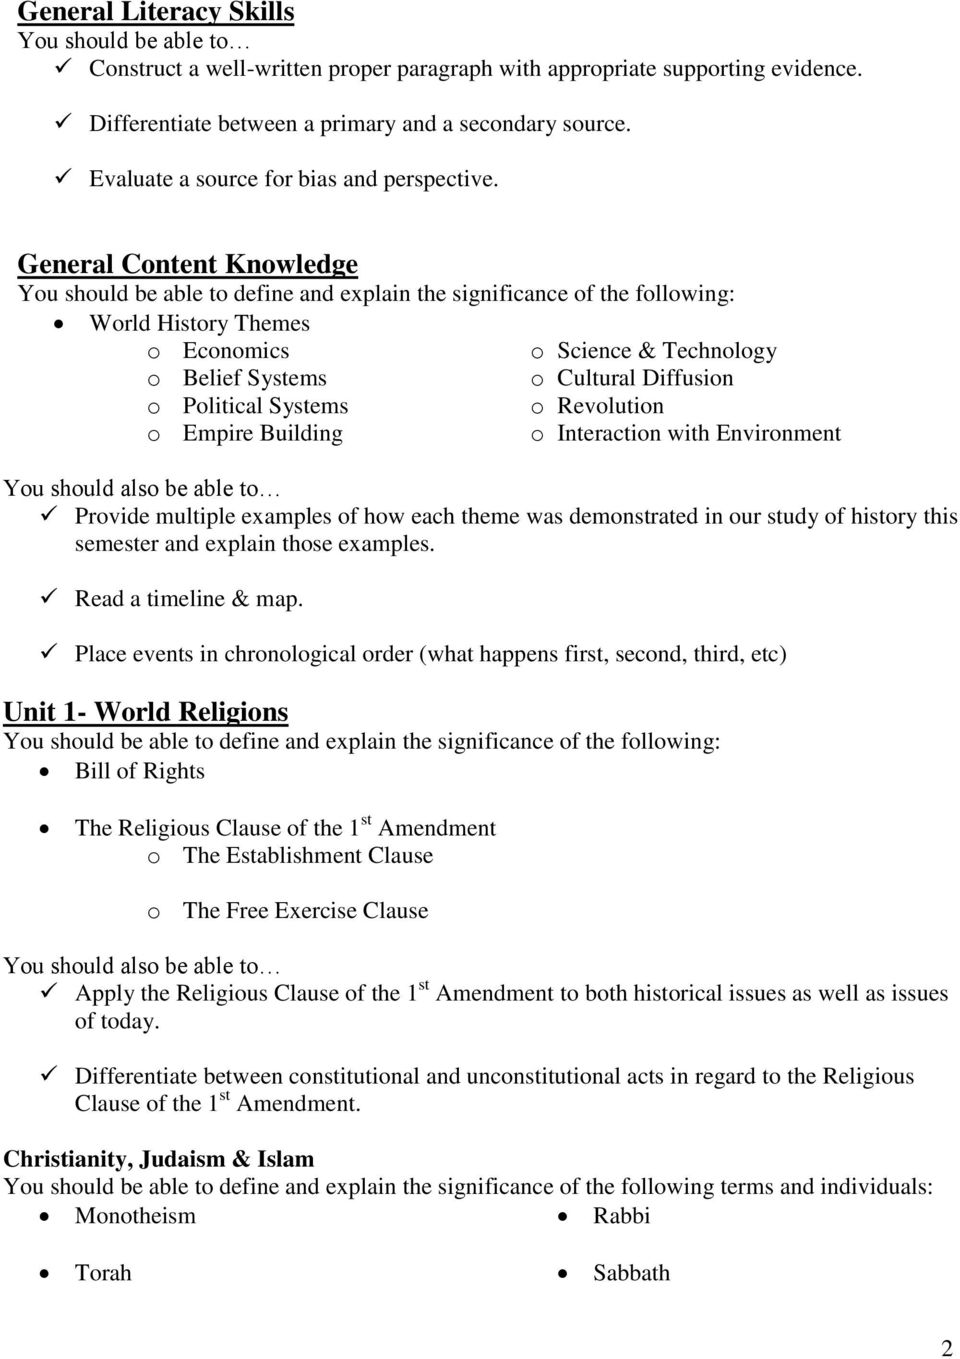 NAME: World History Semester 1 Final Study Guide - PDF